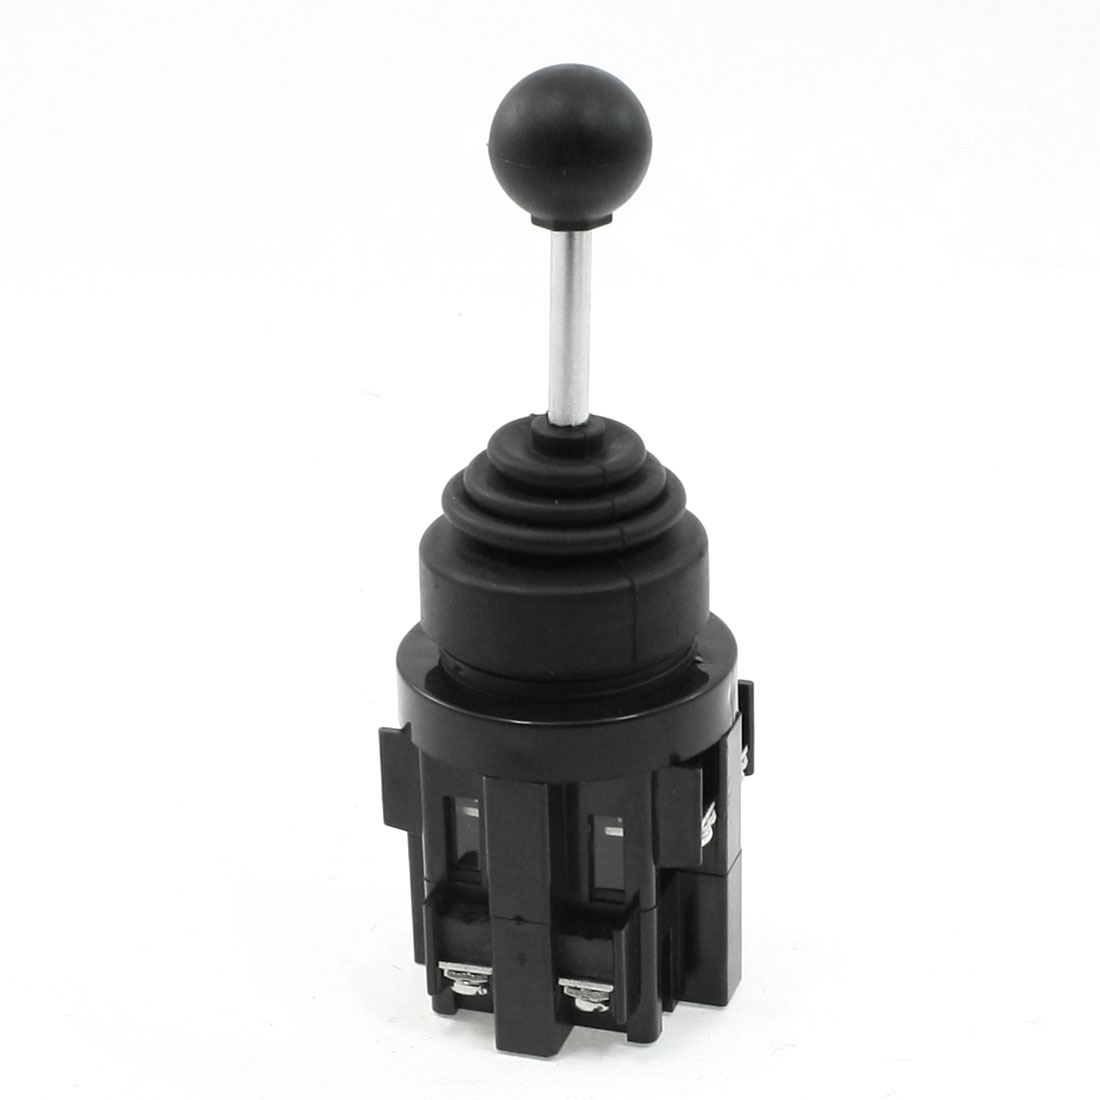 Four Directions 30 Degrees Self-locking Type Monolever Switch 600V